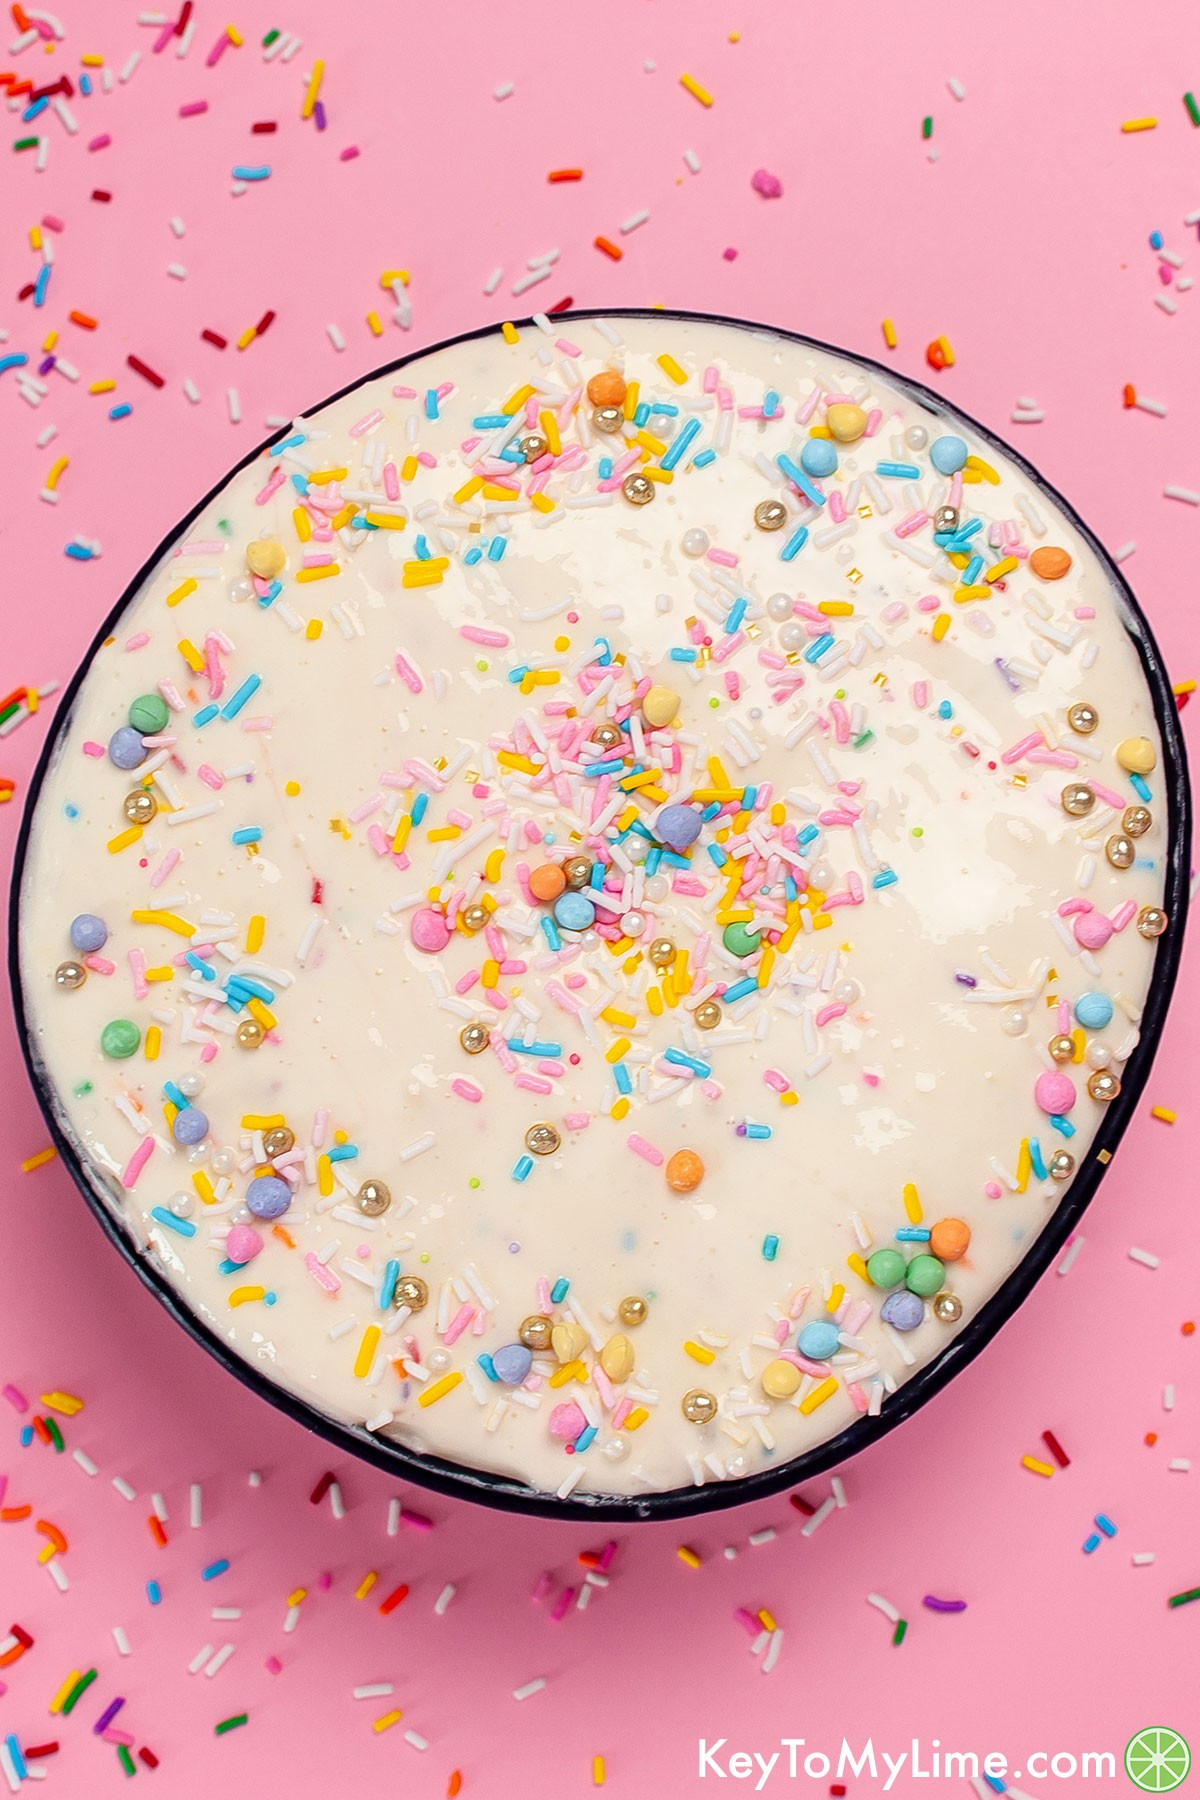 A bowl of funfetti dip against a pink background with sprinkles spread around.